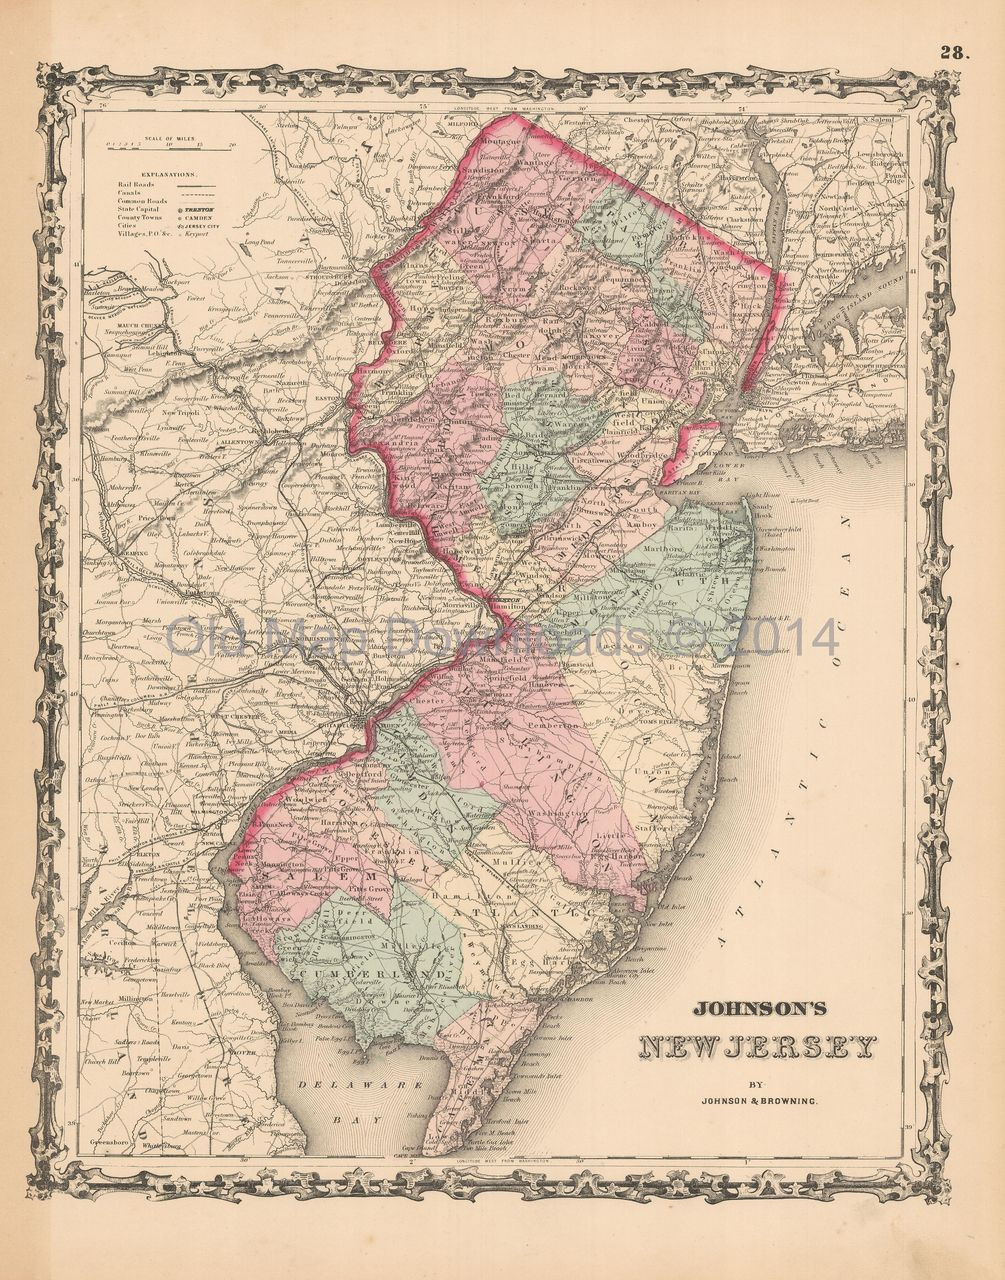 Printable Jersey Map Fresh New Jersey Old Map Johnson 1861 Digital Image Scan Download